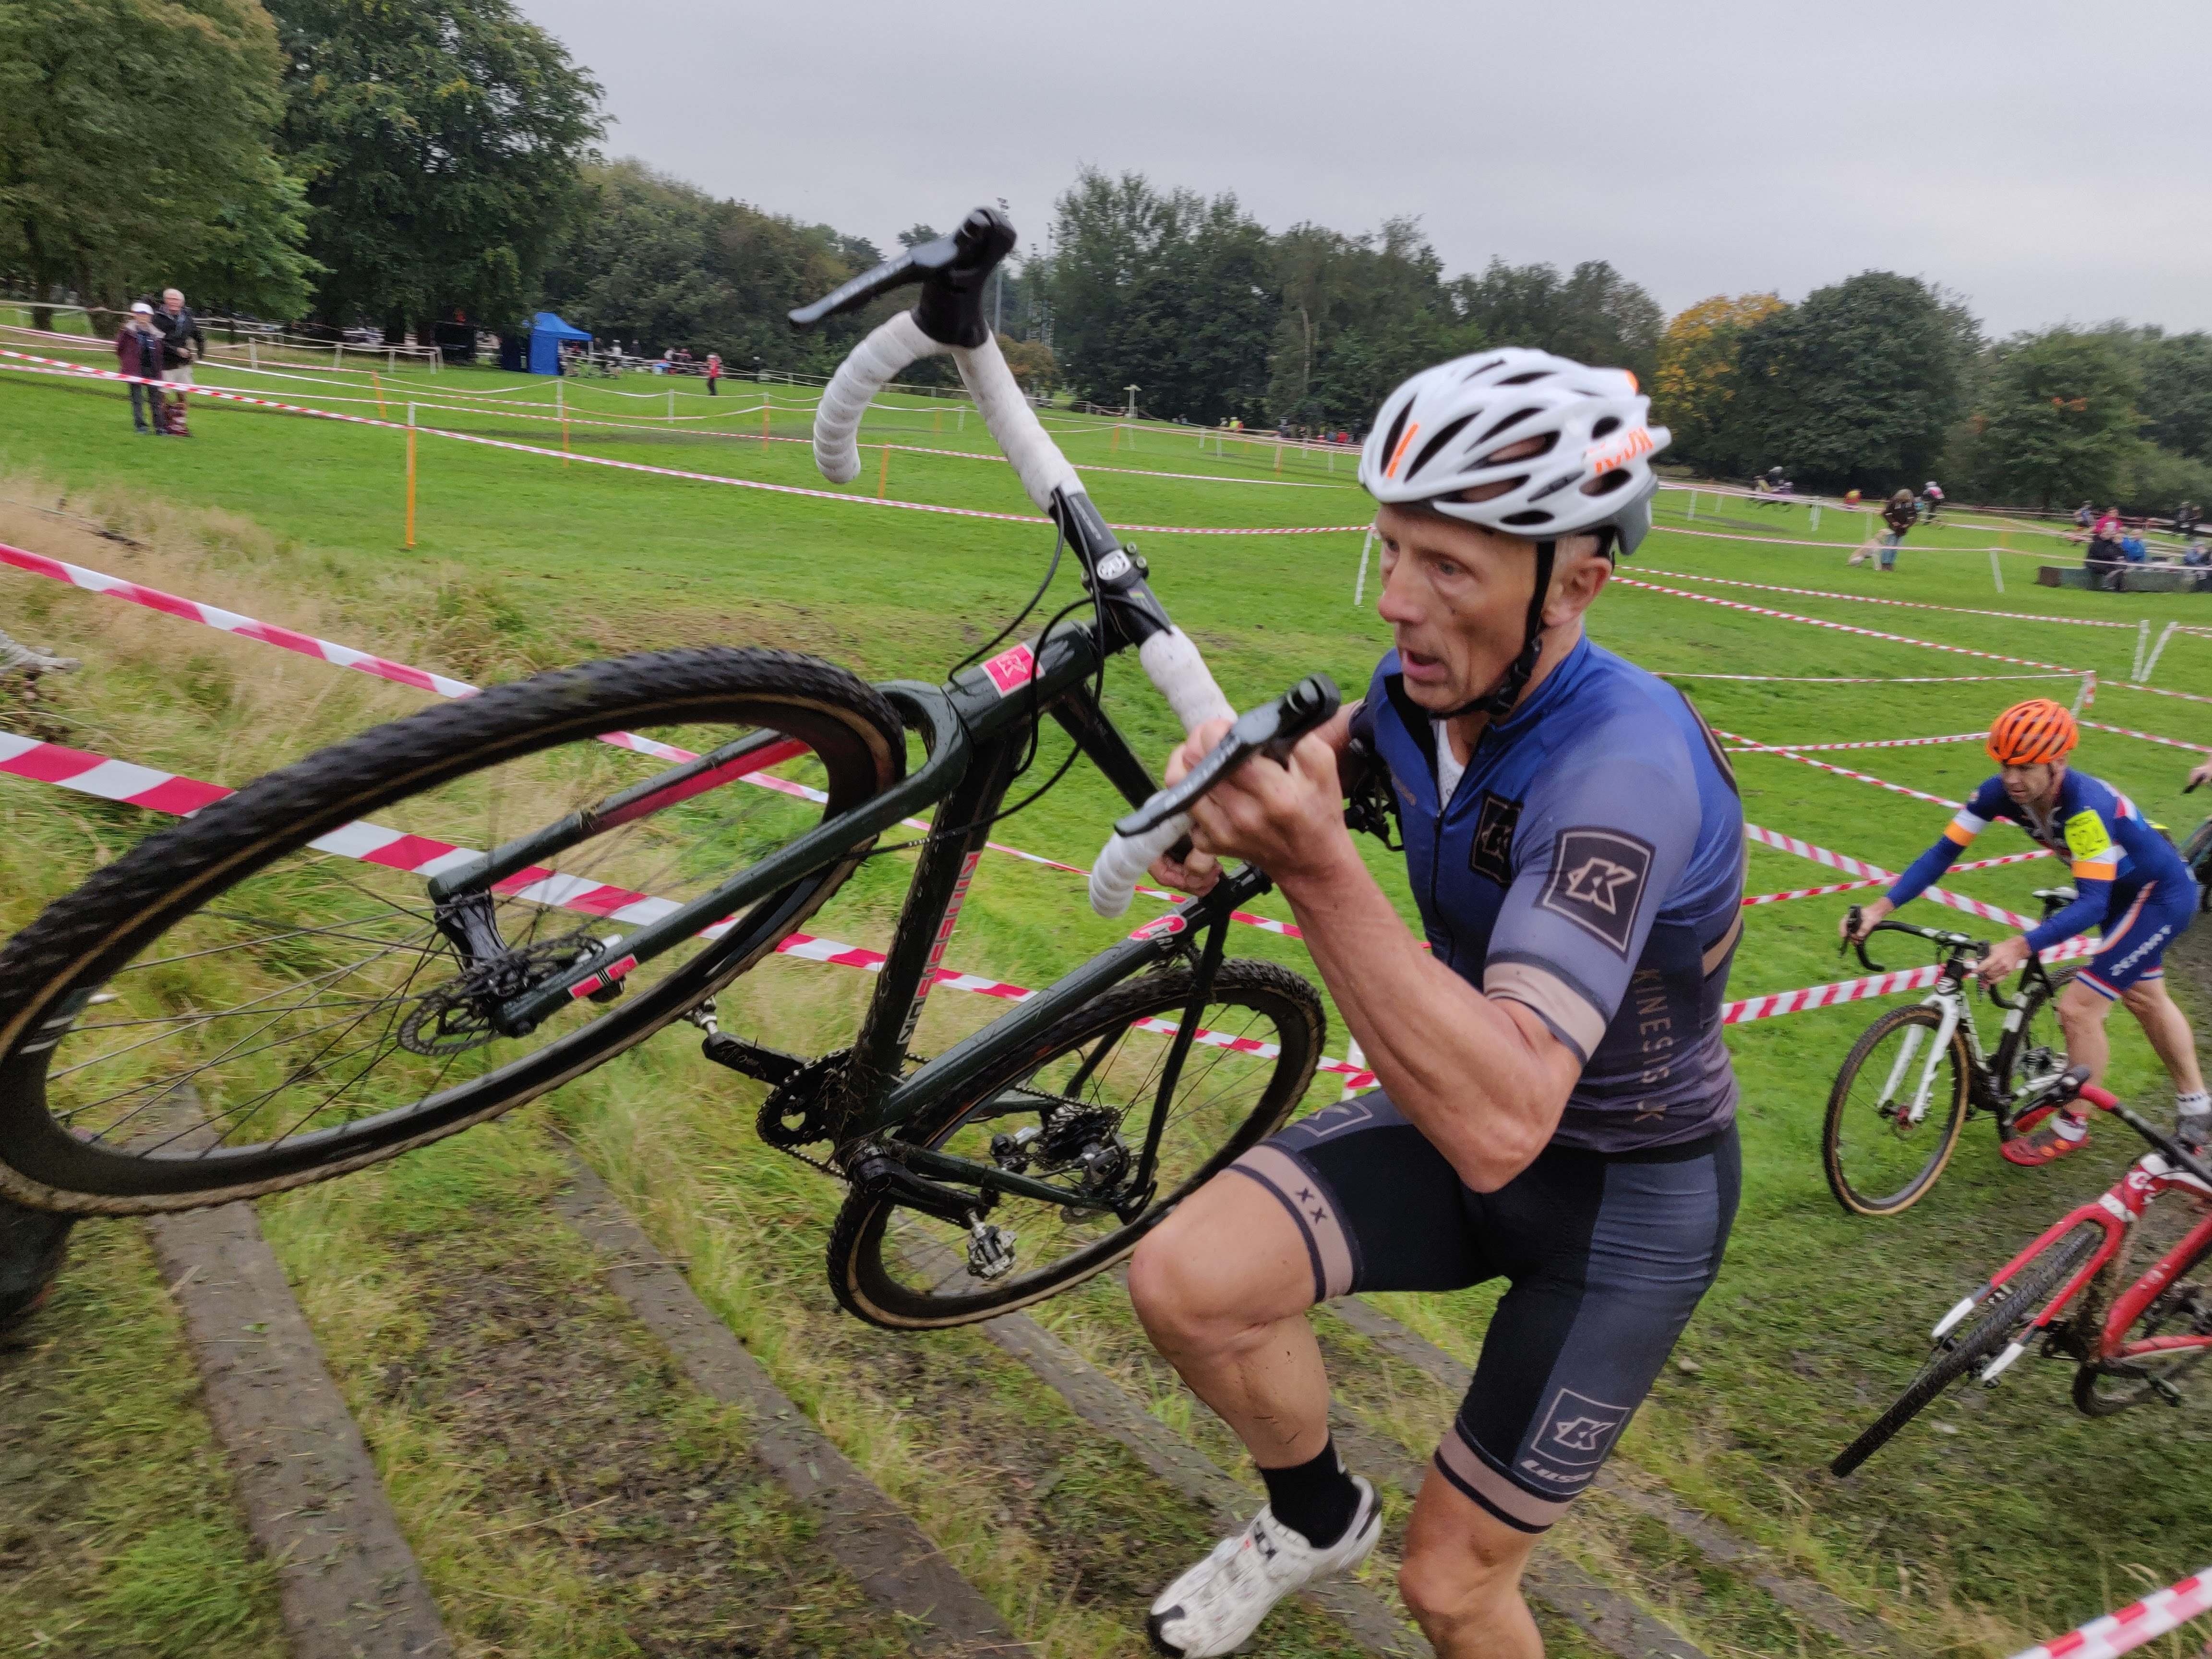 Howrich Humdinger, Leverhulme Park, – NWCCA Round 3